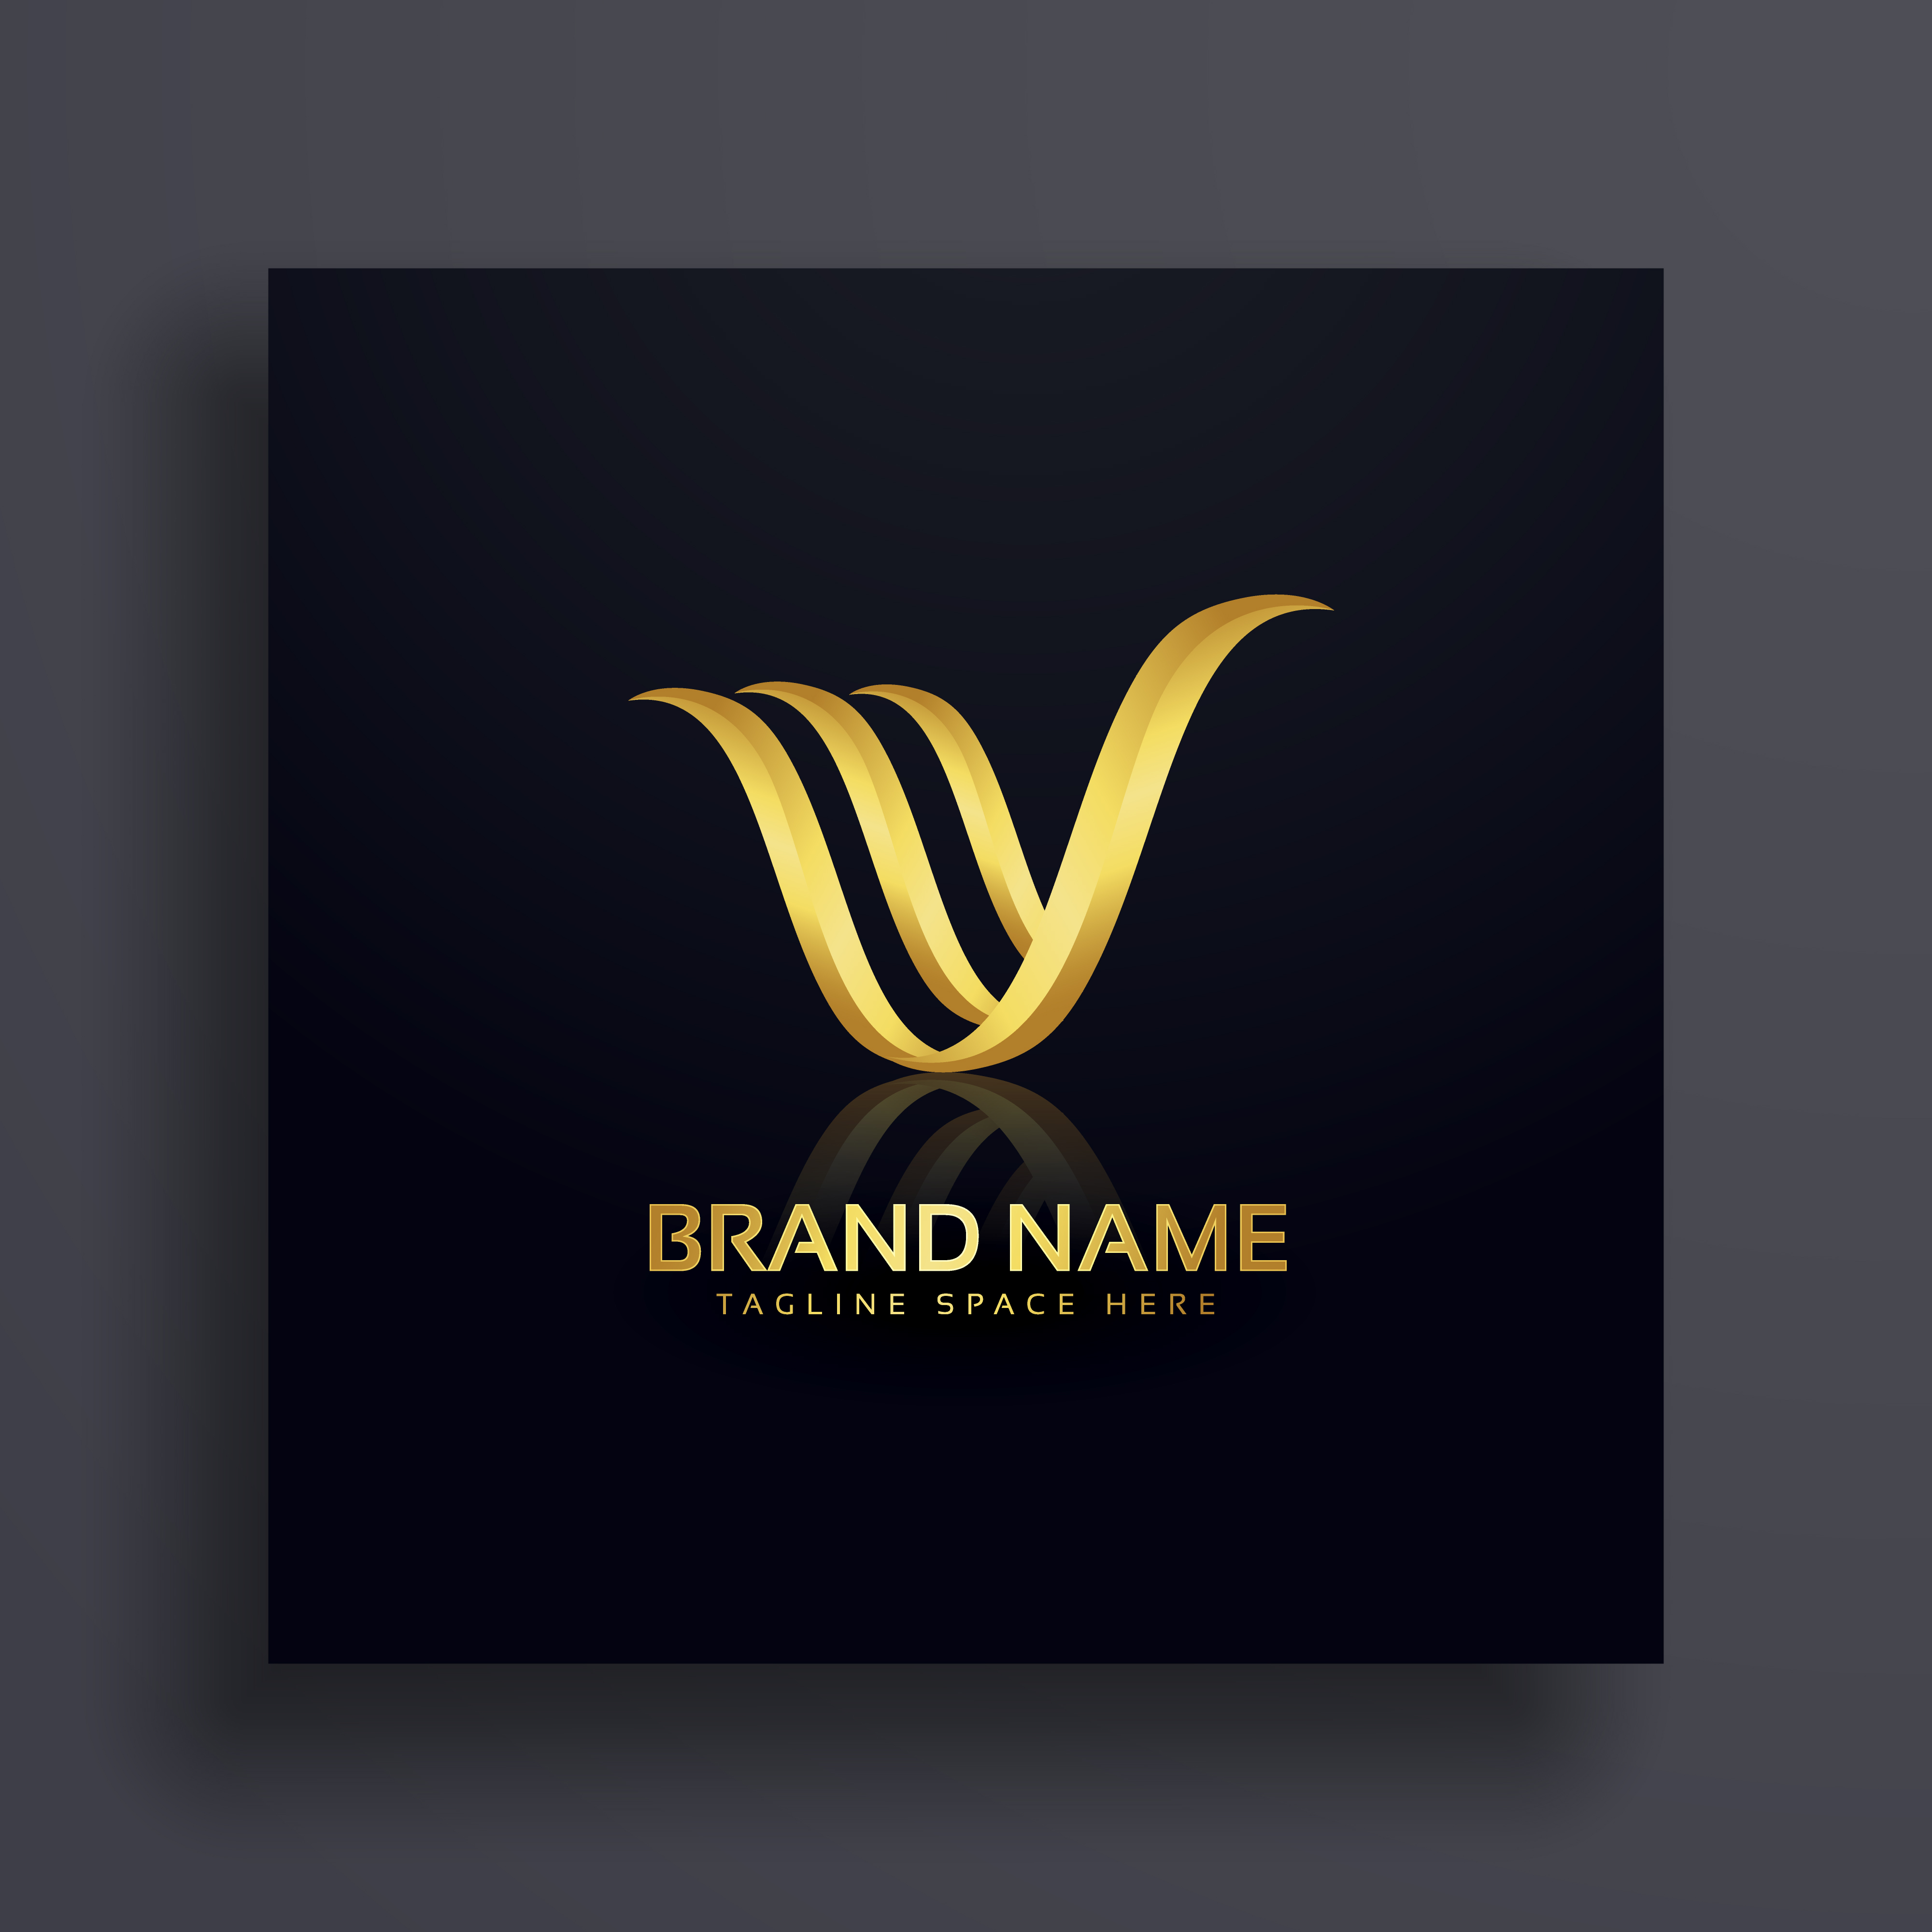 Premium Logo Design by Stuffx on Envato Studio